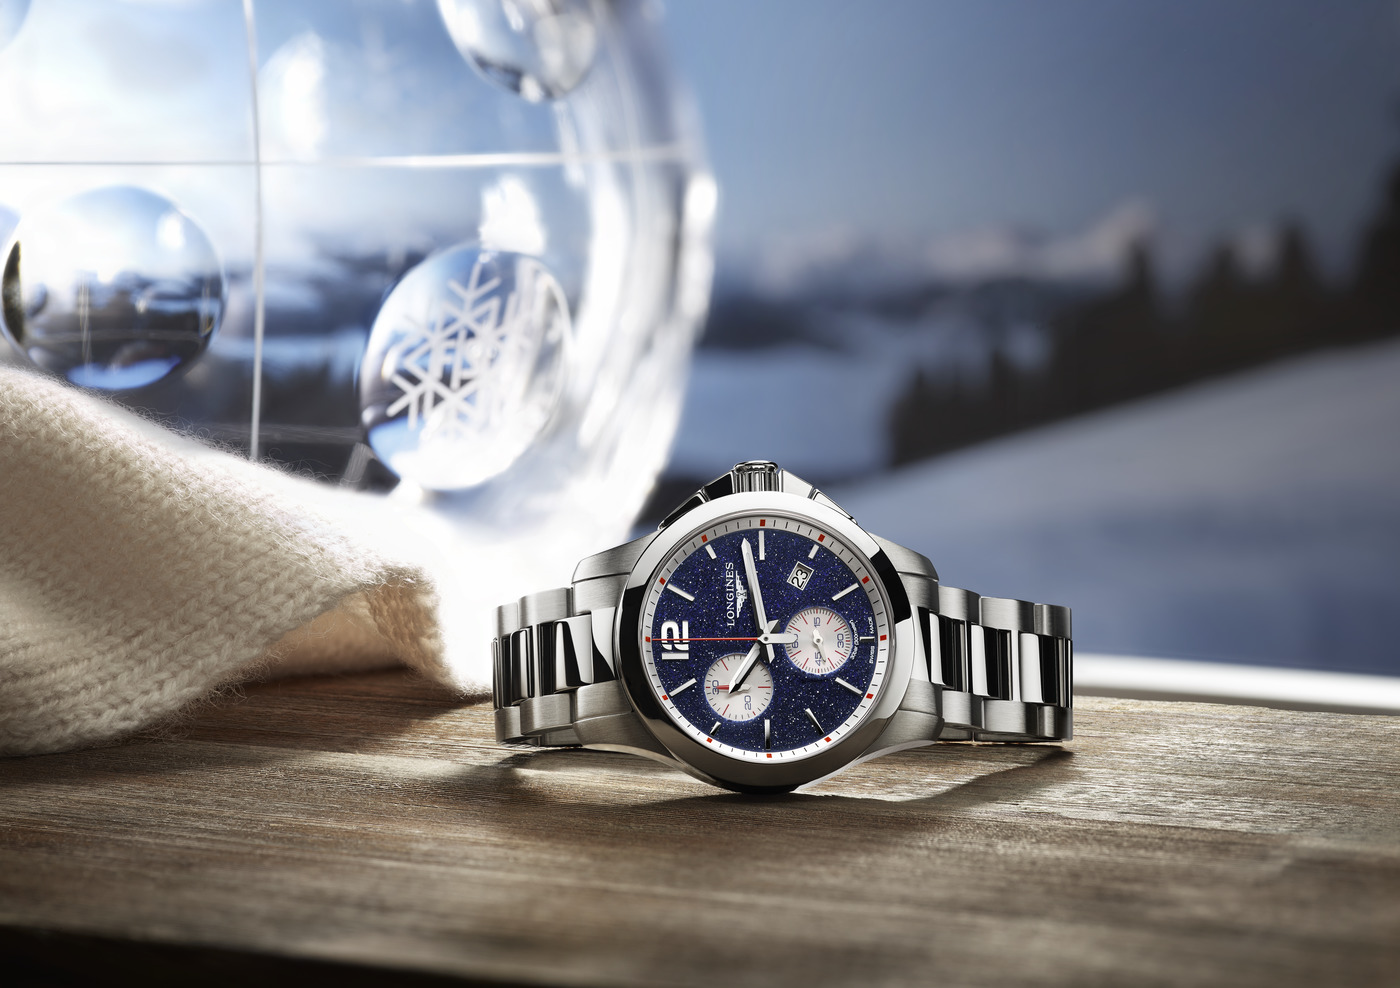 Longines Conquest Chronograph by Mikaela Shiffrin Watch 2